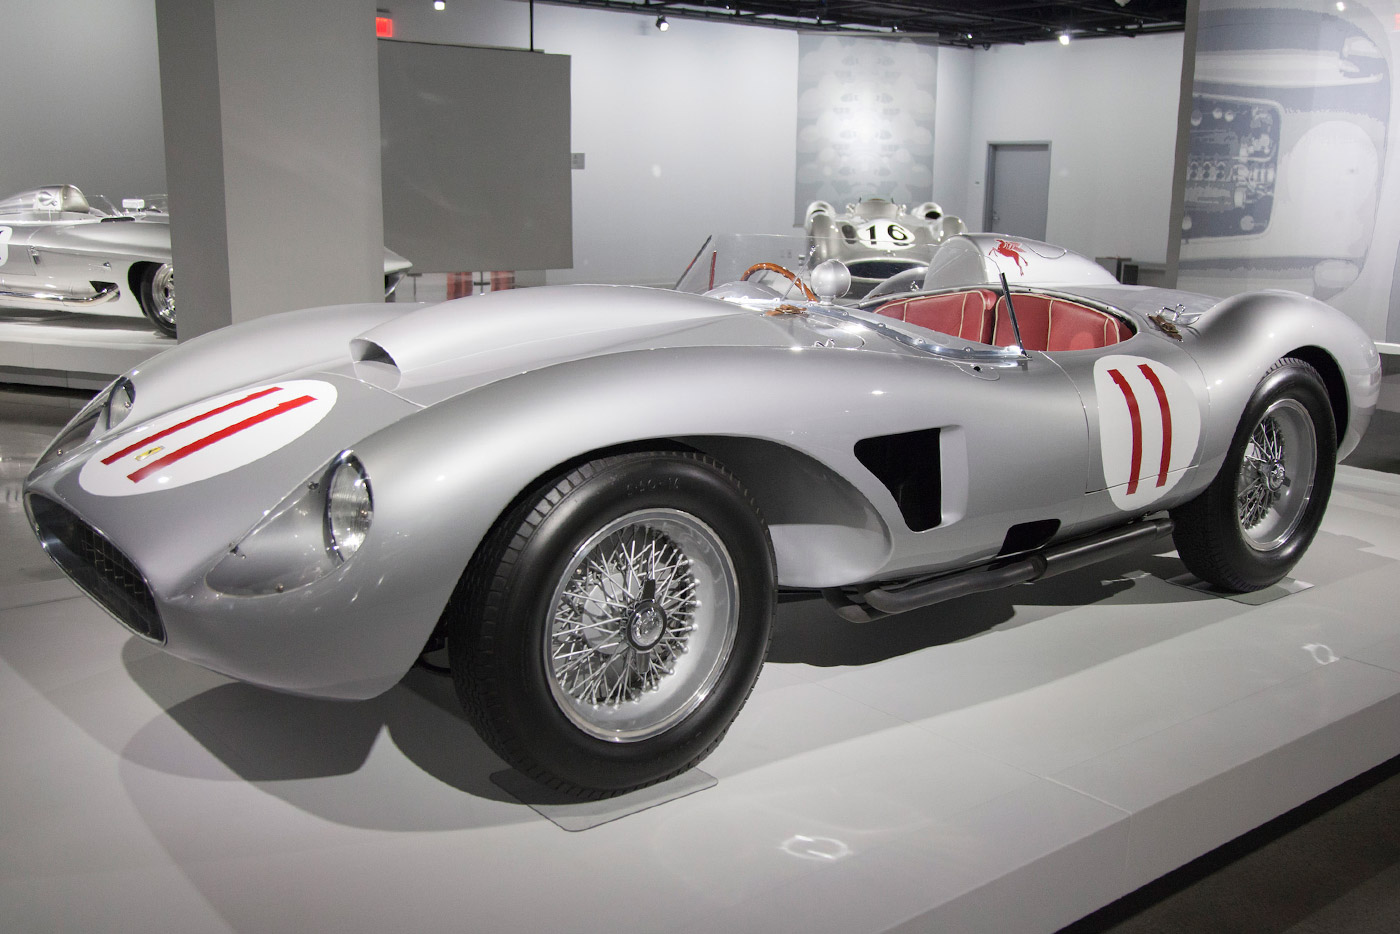 1957 Ferrari 625/250 Testa Rossa: Also on display in the Precious Metals exhibit, this stunning car is on loan from Bruce Meyer, one of the PAM's board members